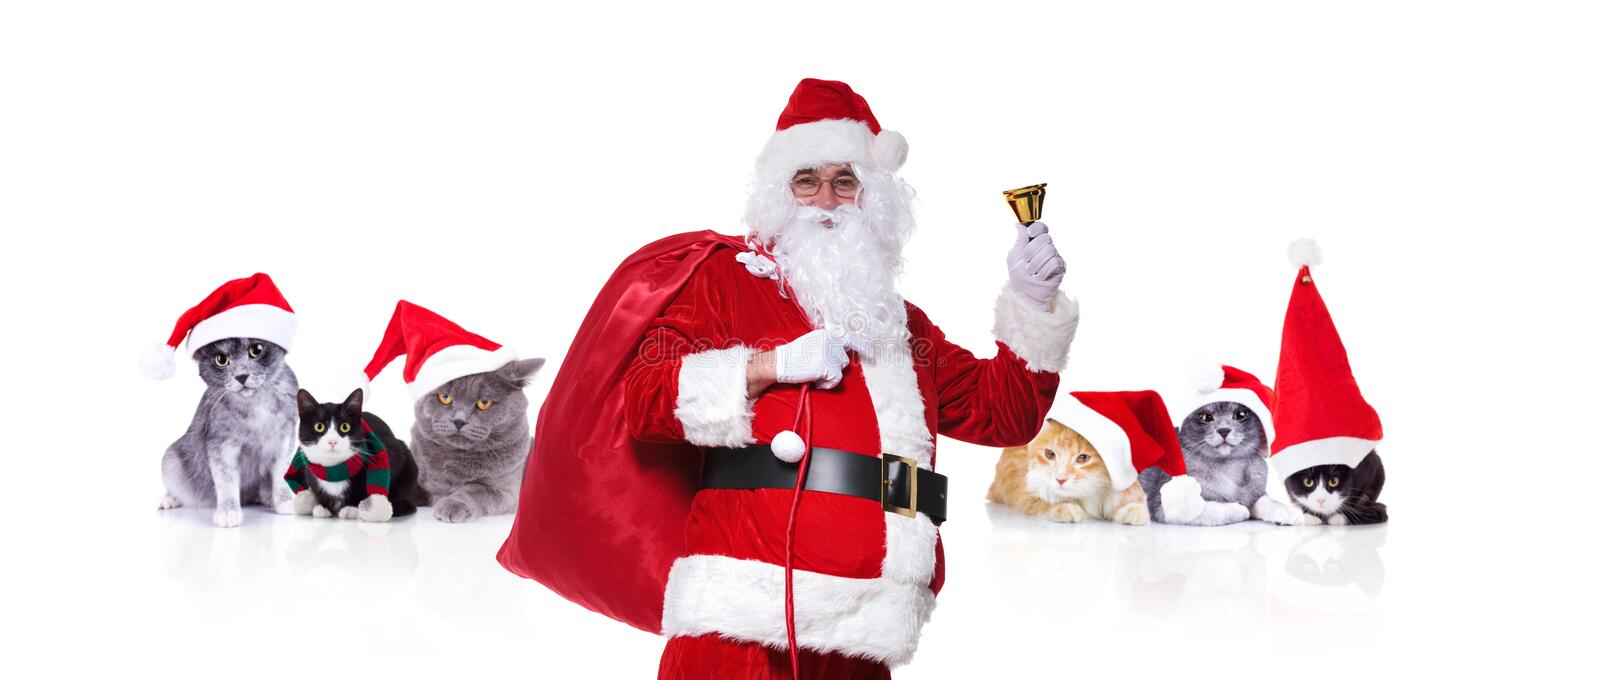 Santa claus standing in front of group of christmas cats stock images